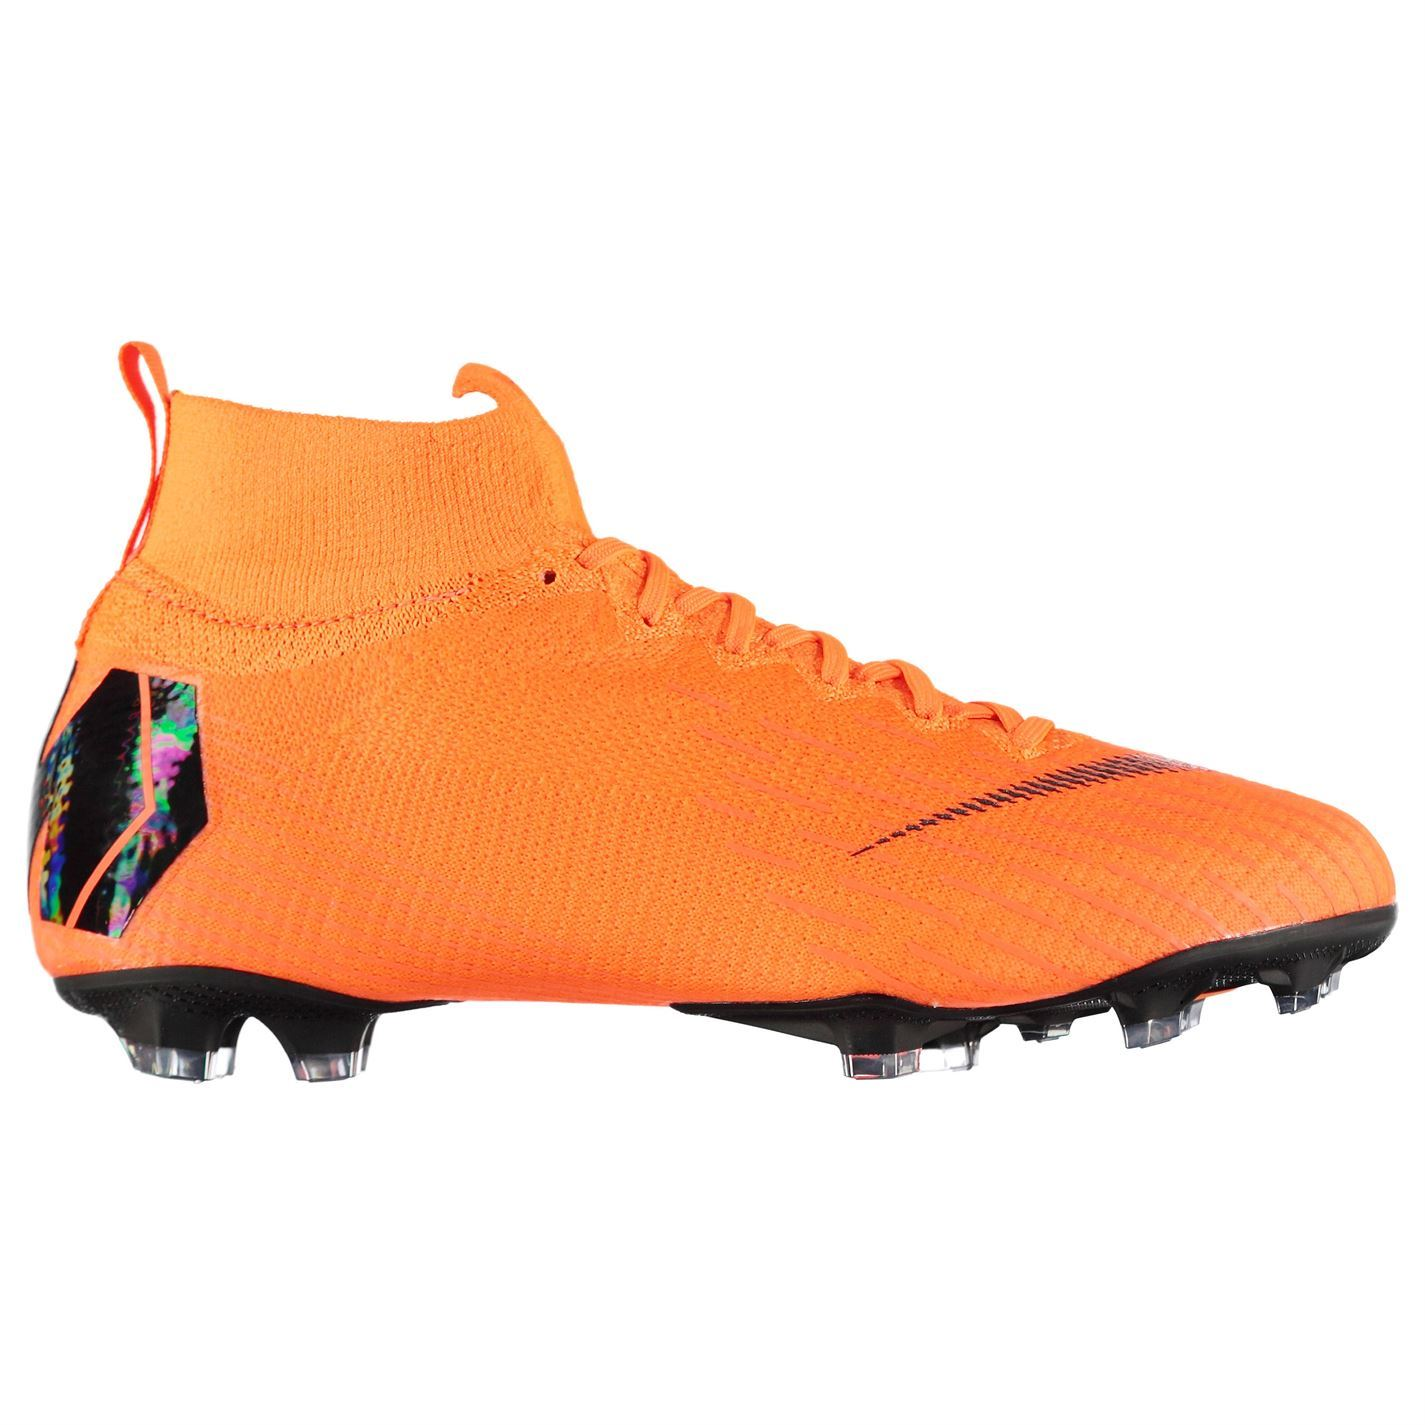 15c42524edfb ... Nike Mercurial Superfly Elite Firm Ground Football Boots Juniors Soccer  Cleats